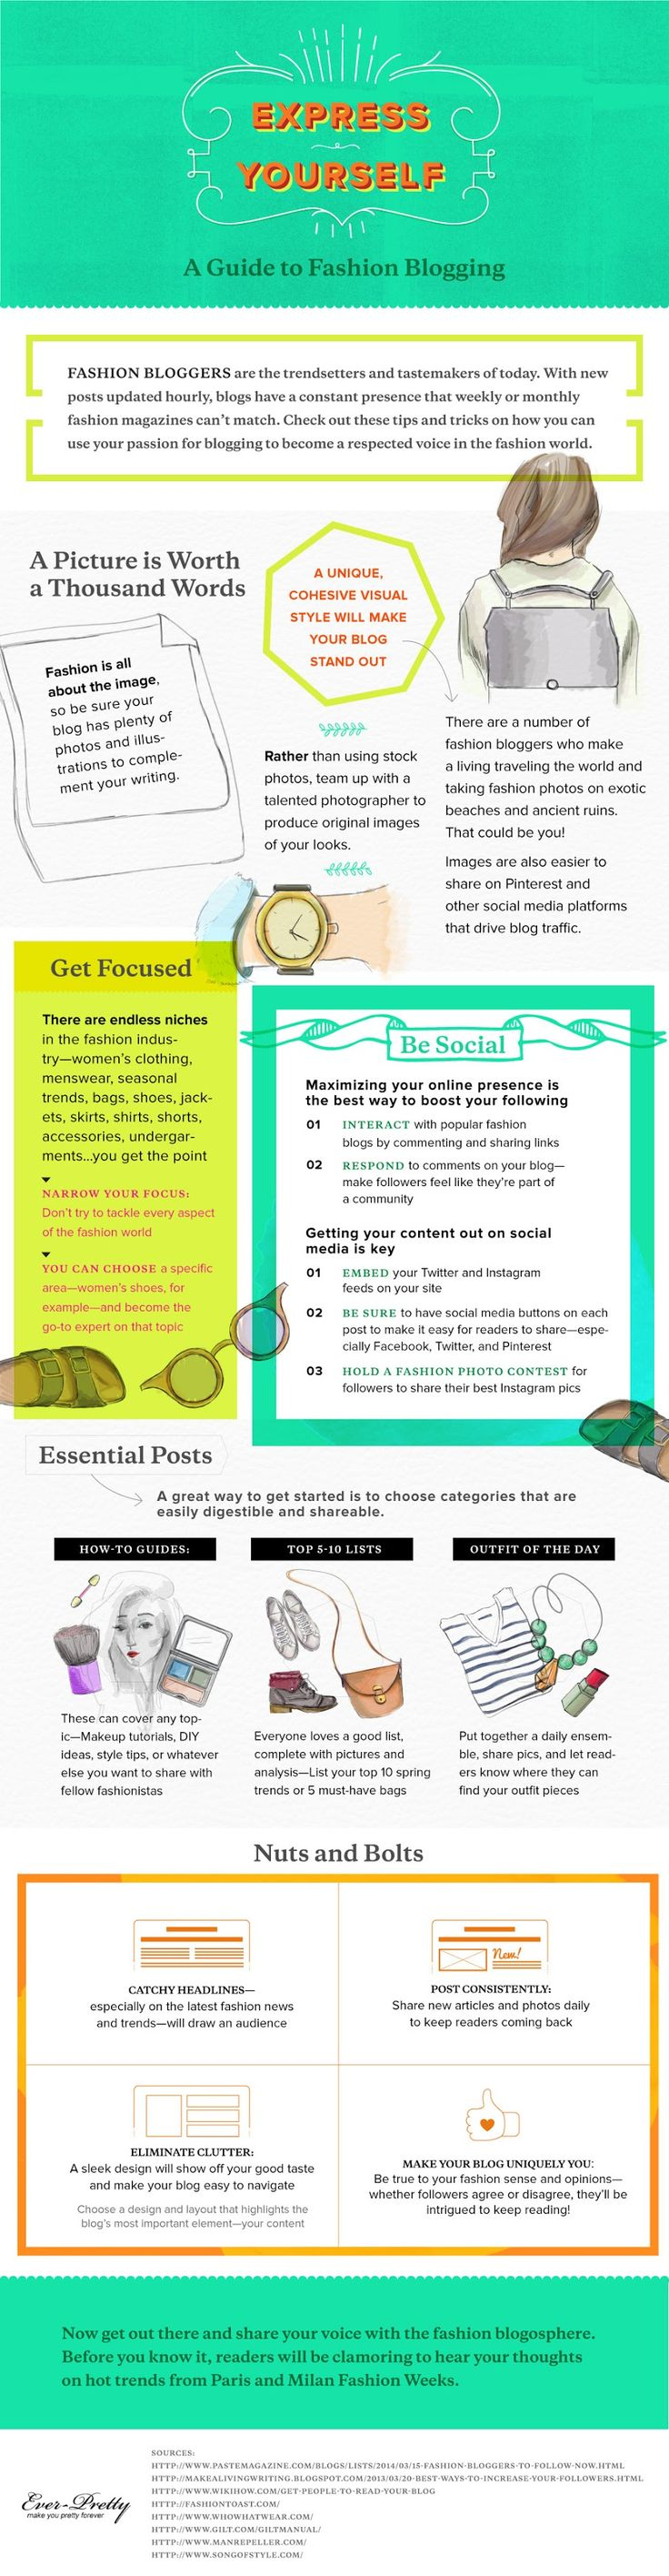 A Guide To Fashion #Blogging – How To Start A Fashion Blog #Infographic